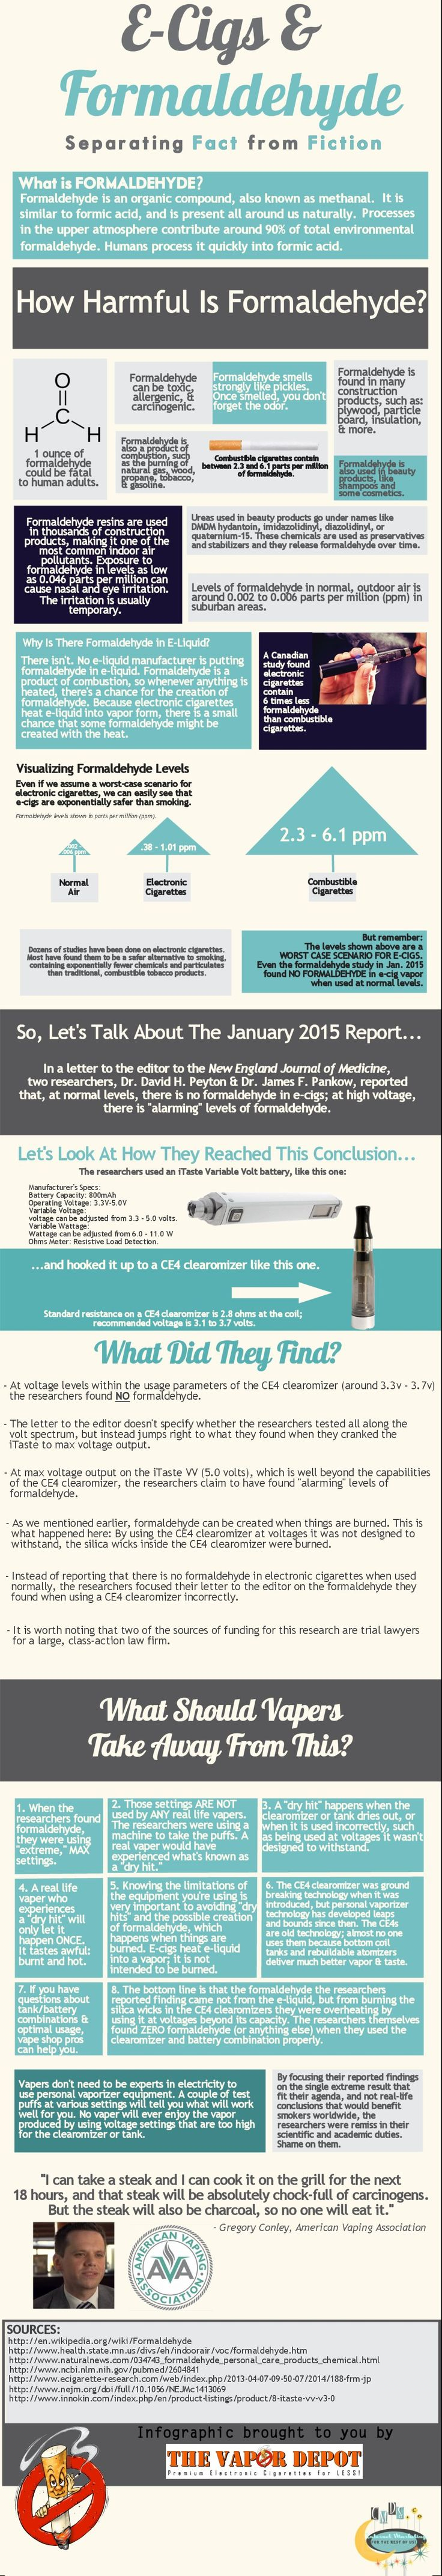 Fear-mongering in news stories have you worried about formaldehyde in your vape? DON'T WORRY! Check out the information in our infographic to see why the recent formaldehyde study was nothing but fear-mongering for an agenda to eliminate e-cigs! #VapeOn #VapeFriendly #TheVaporDepot